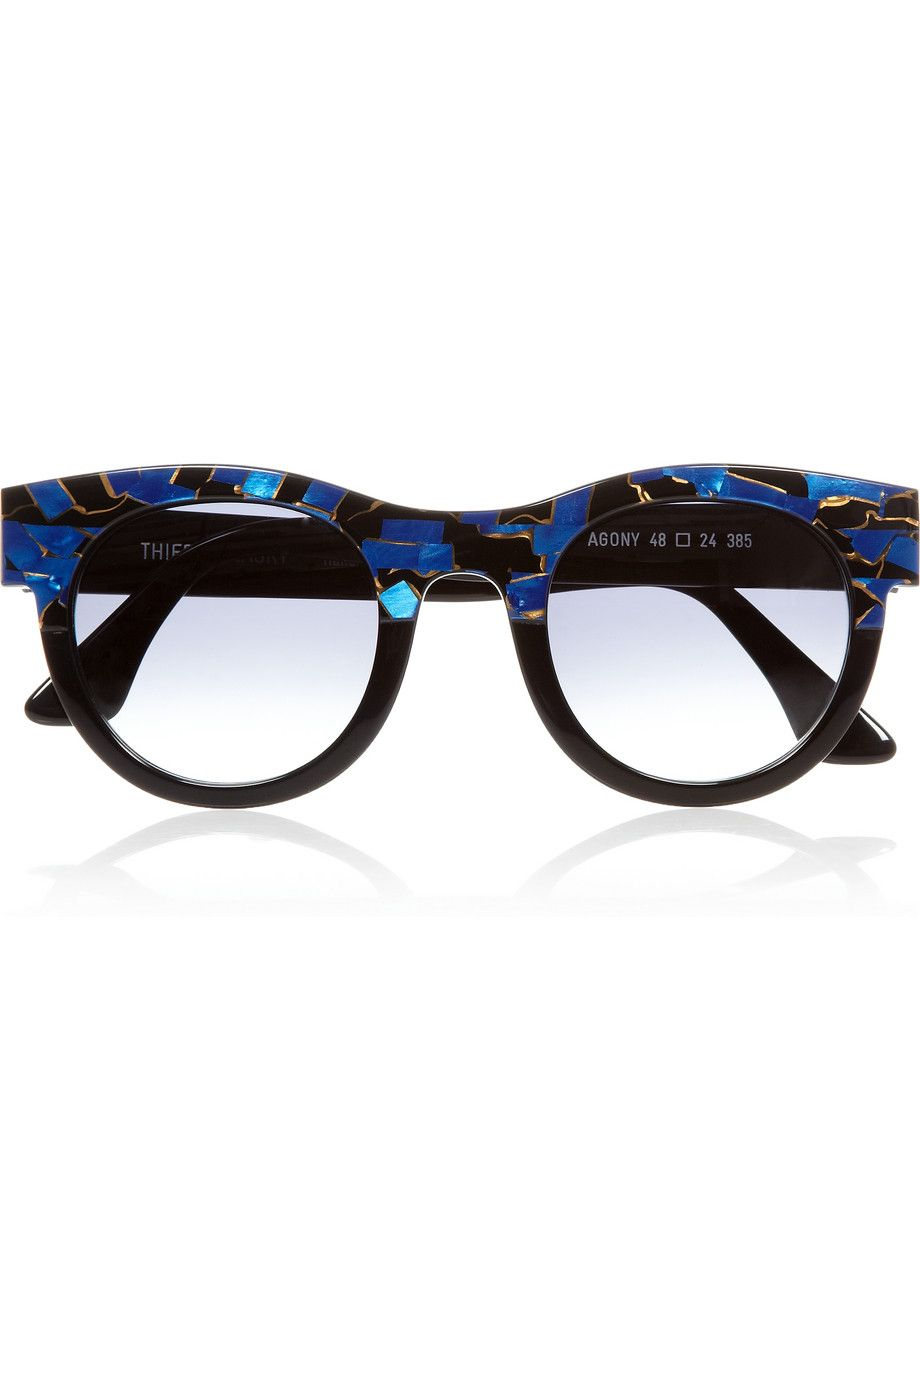 Thierry Lasry - Agony D-frame acetate sunglasses